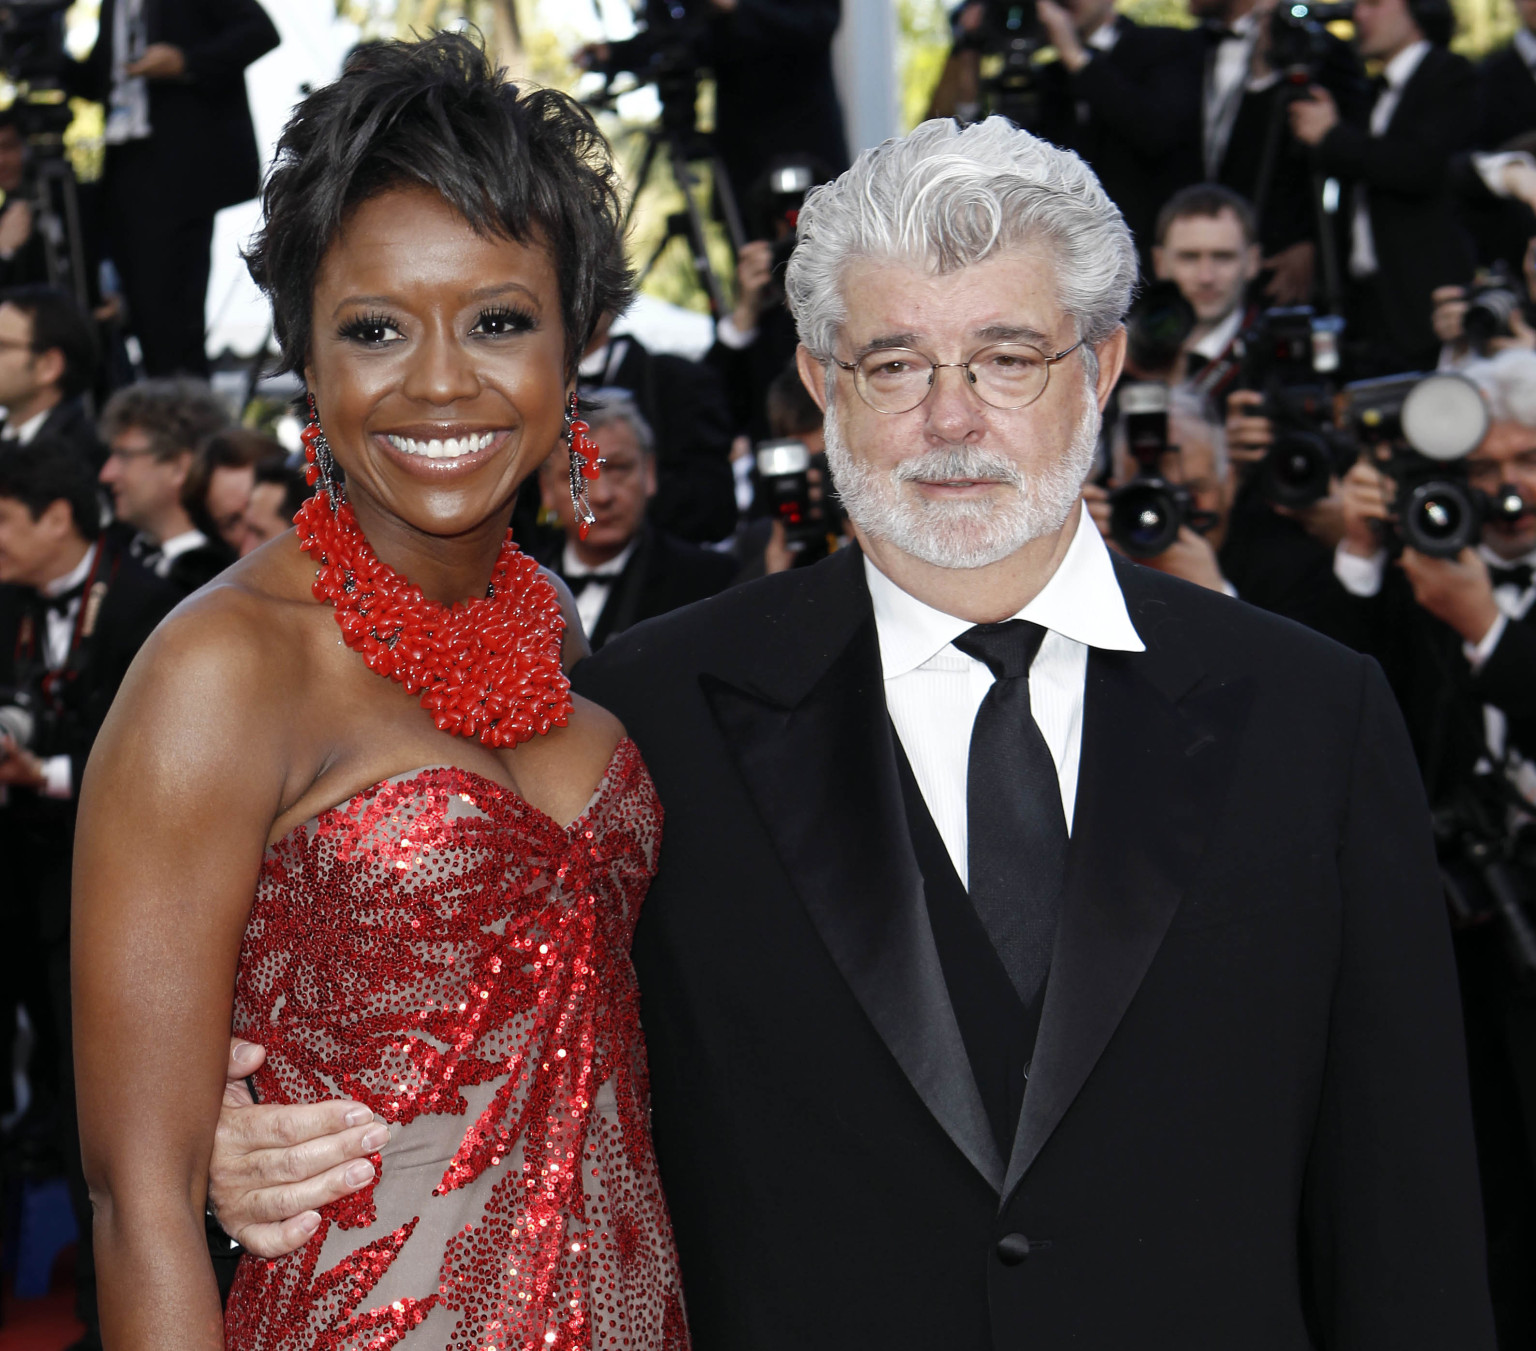 George Lucas's Wife, CBS Contributor Mellody Hobson, Broke